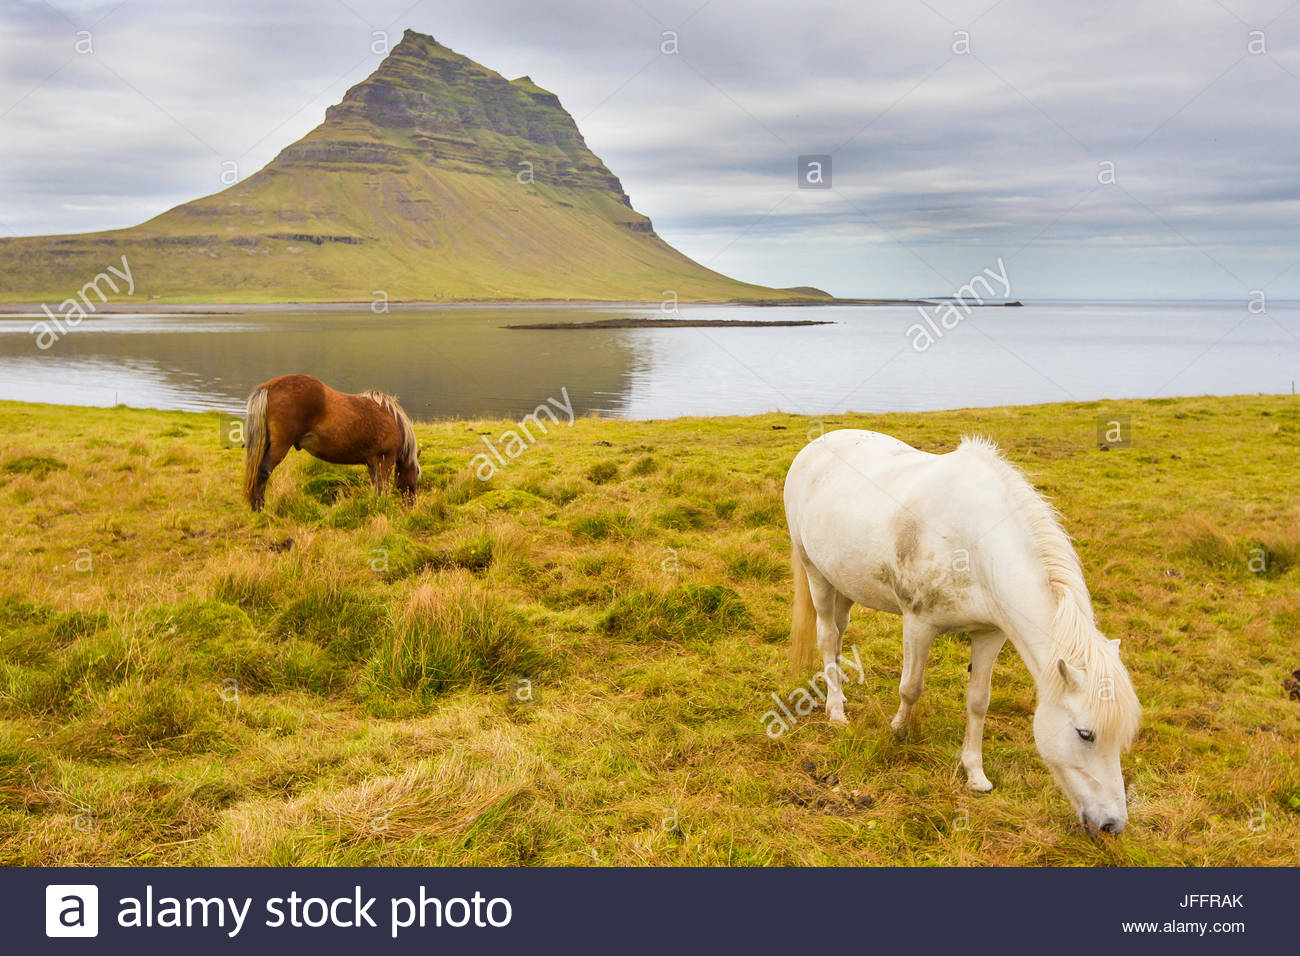 Horses grazing in a meadow near Kirkjufell Mountain, on Iceland's coast. Stock Photo